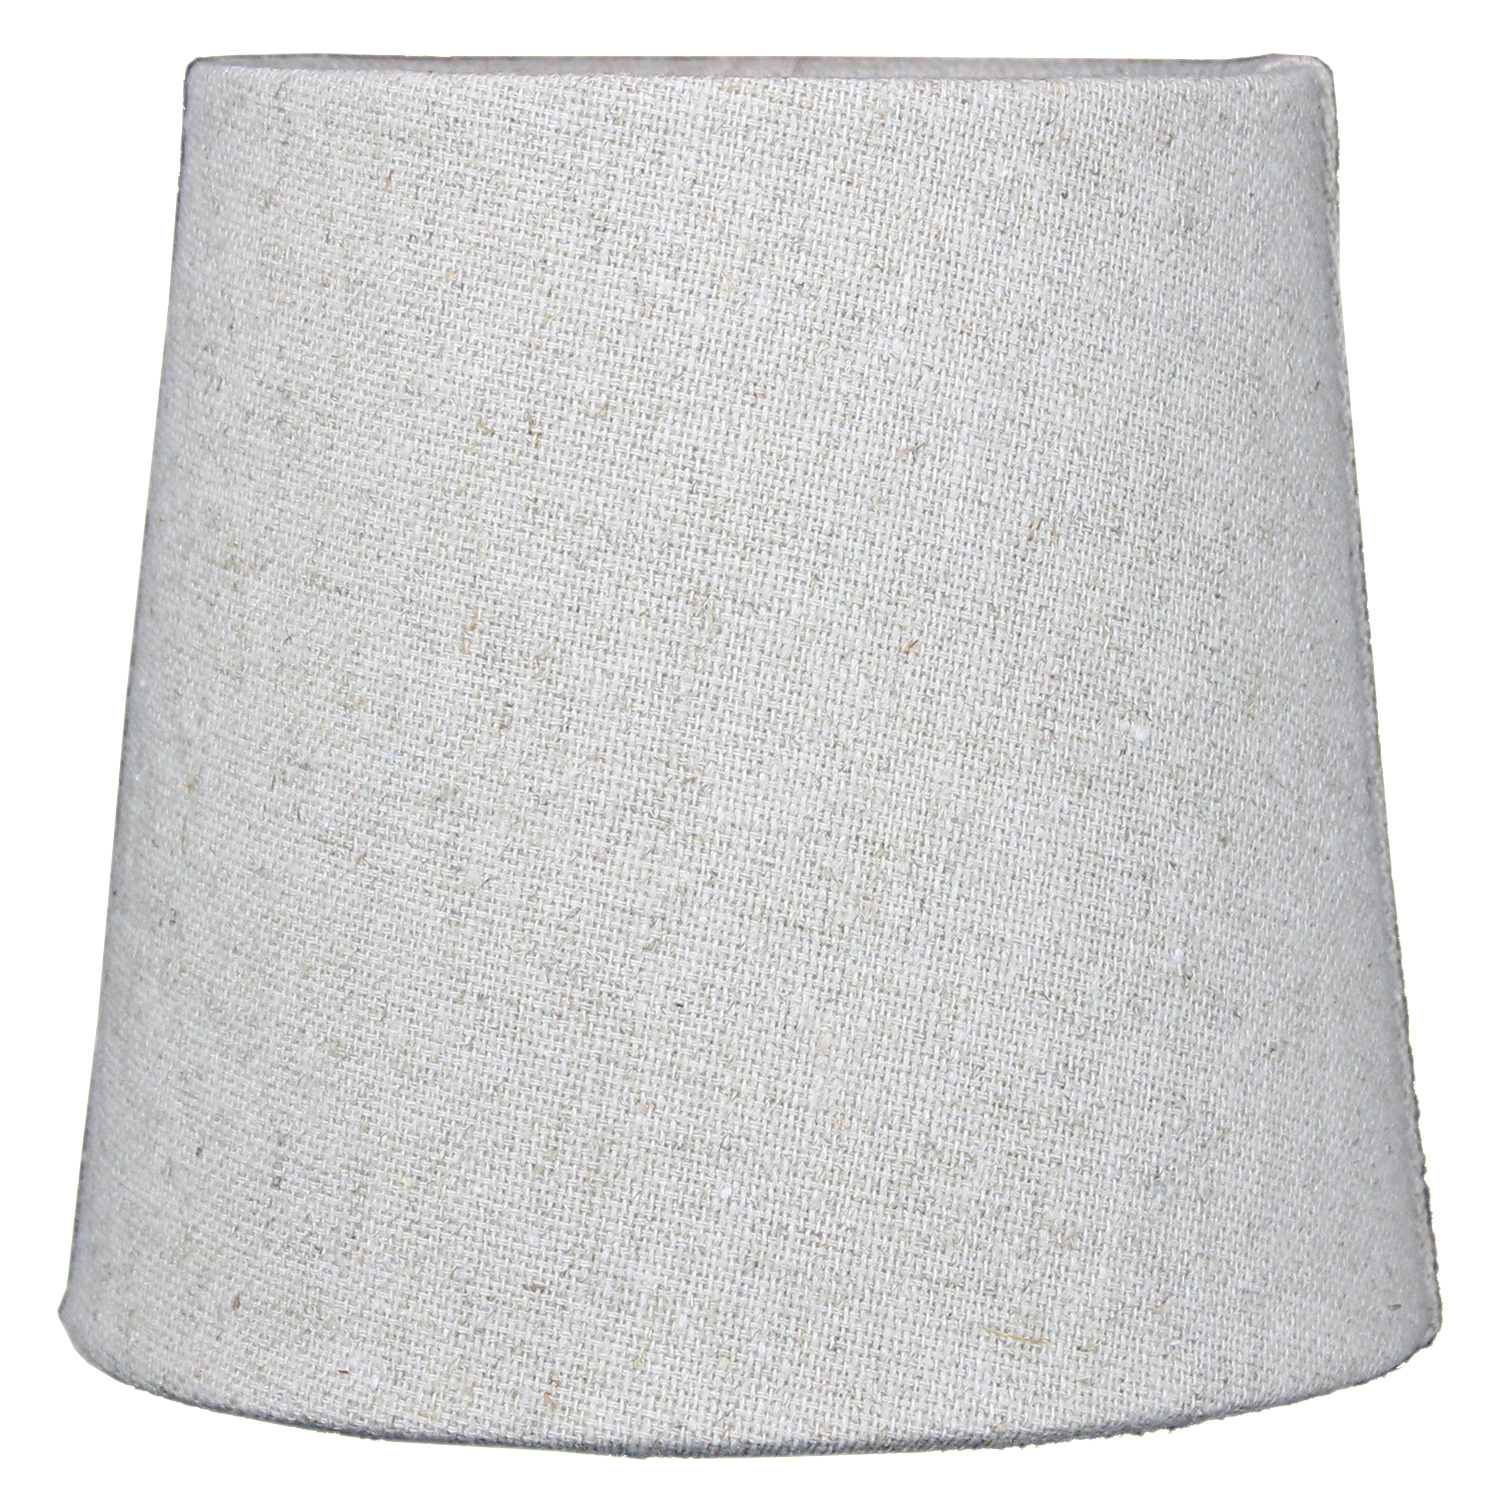 5x6x5 Khaki Burlap Drum Chandelier Clip-On Lampshade